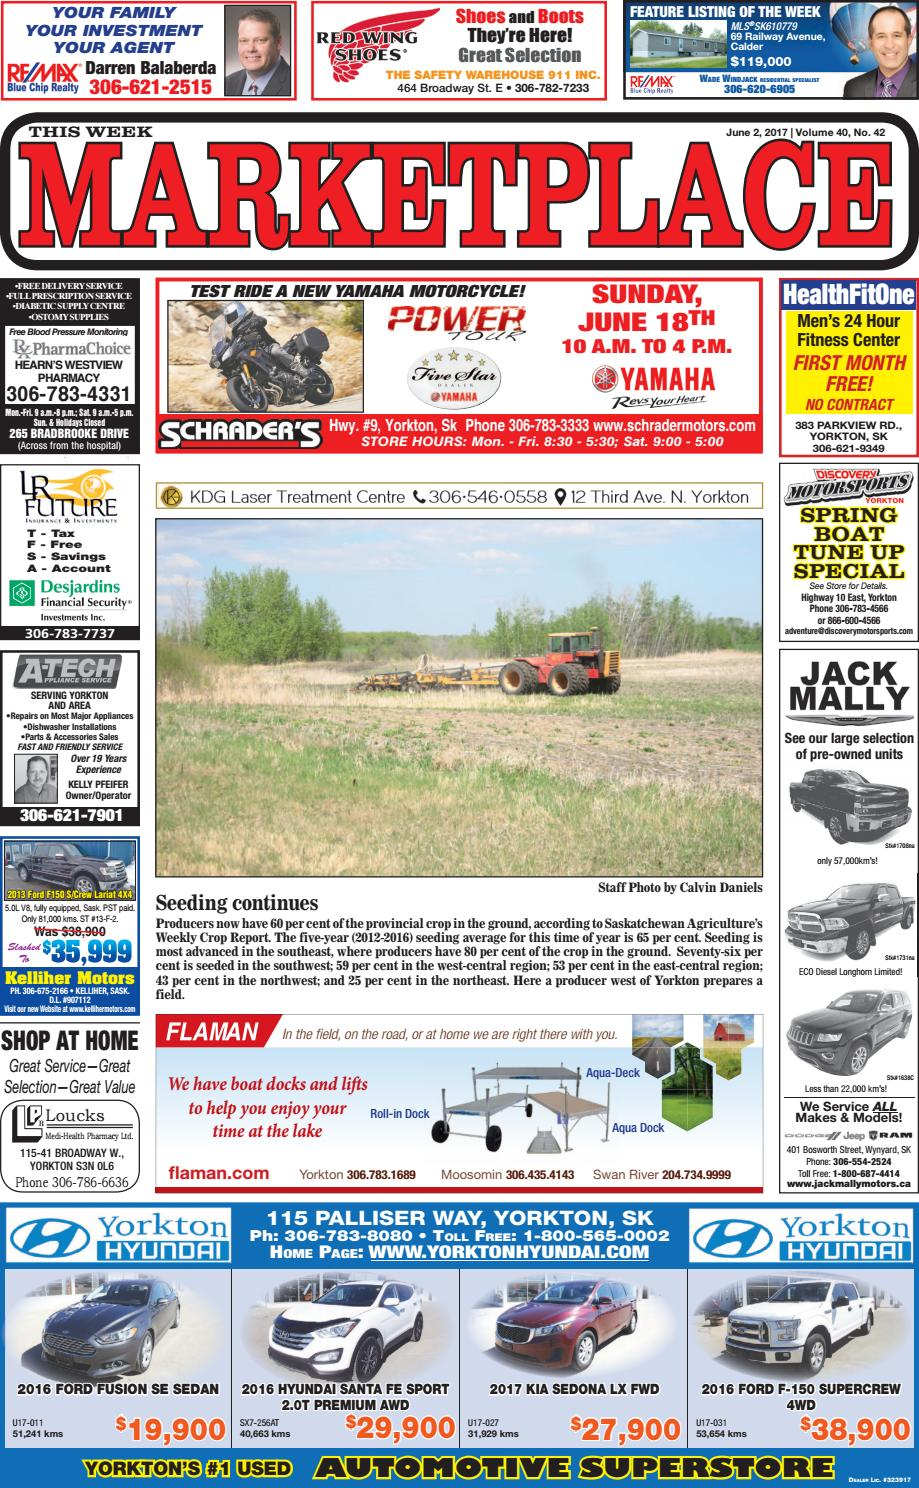 Marketplace - June 2, 2017 by Yorkton This Week - issuu